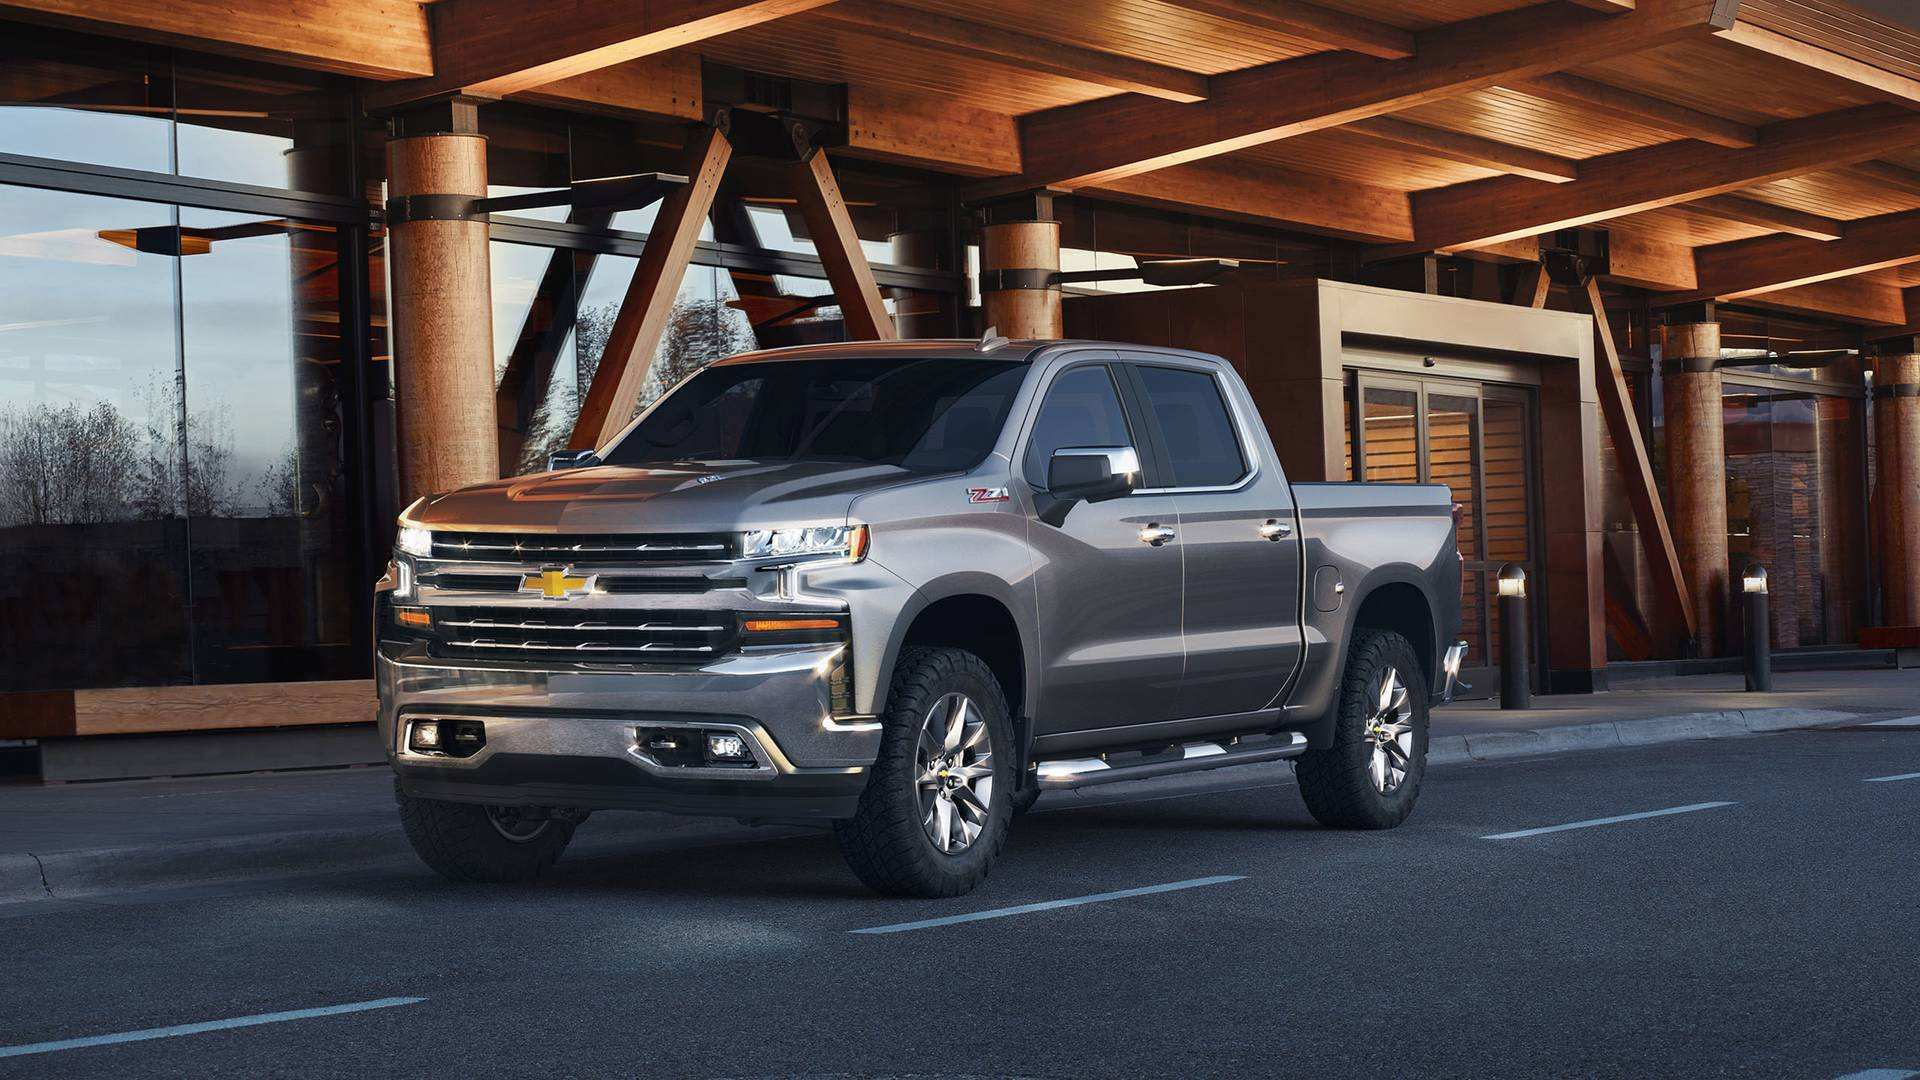 66 New 2019 Chevy Duramax Specs